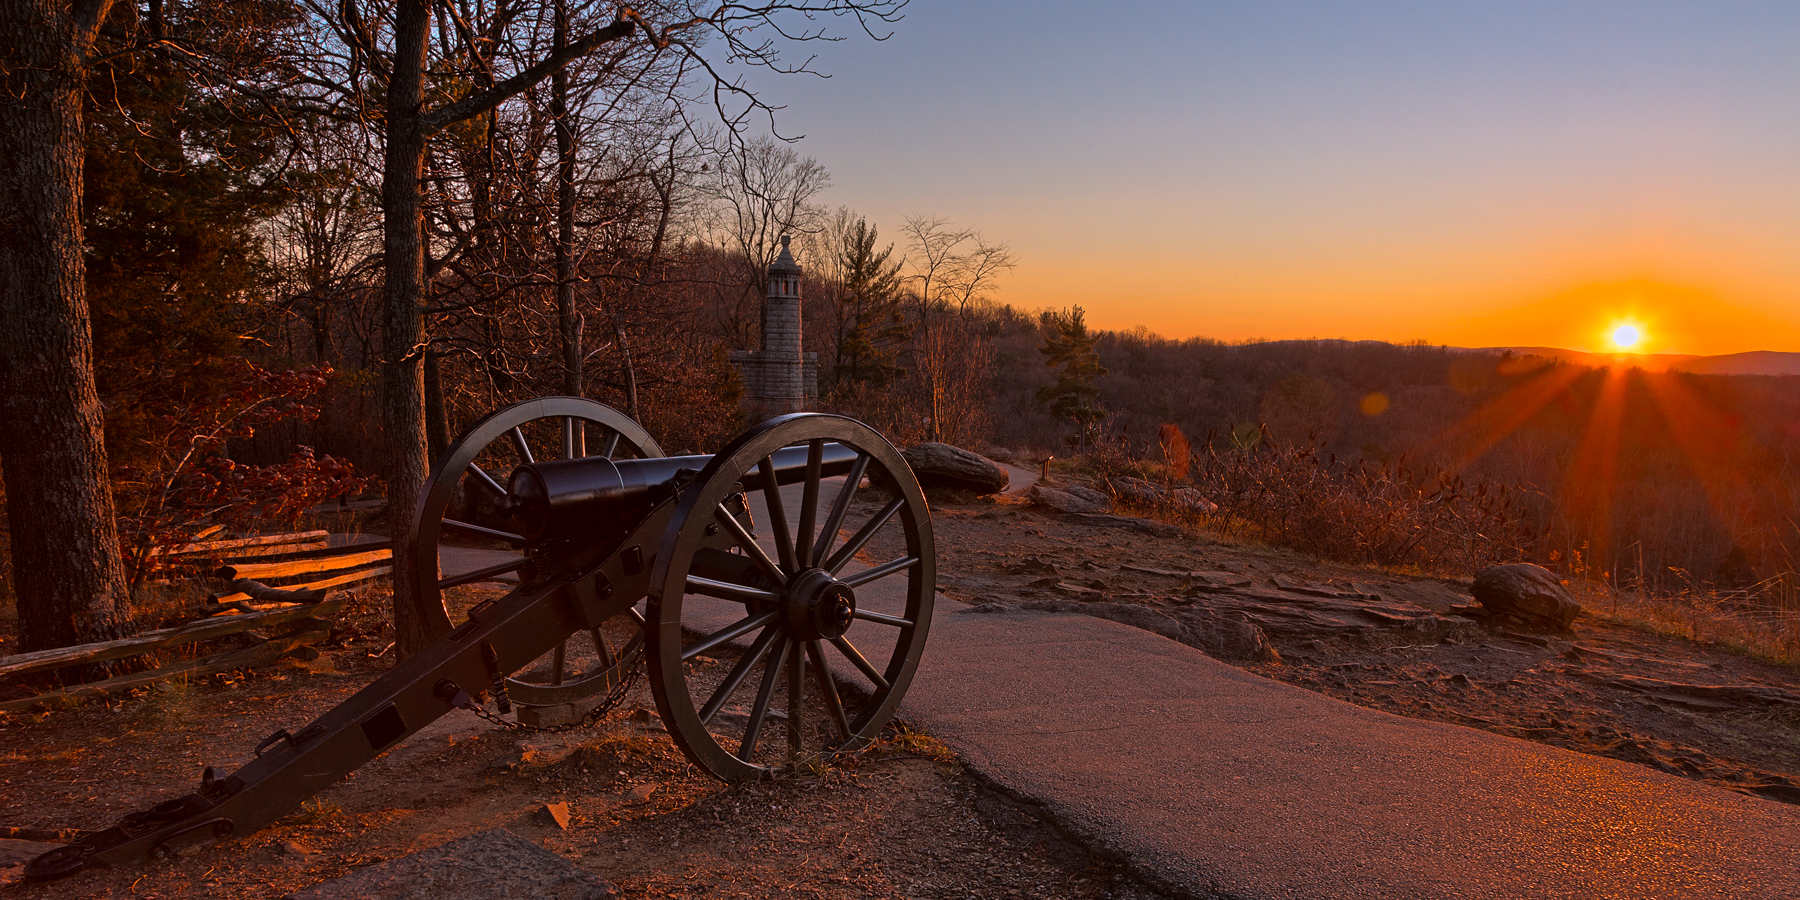 Gettysburg Sunset Cannon - HDR, Age, Path, Shade, Scenic, HQ Photo